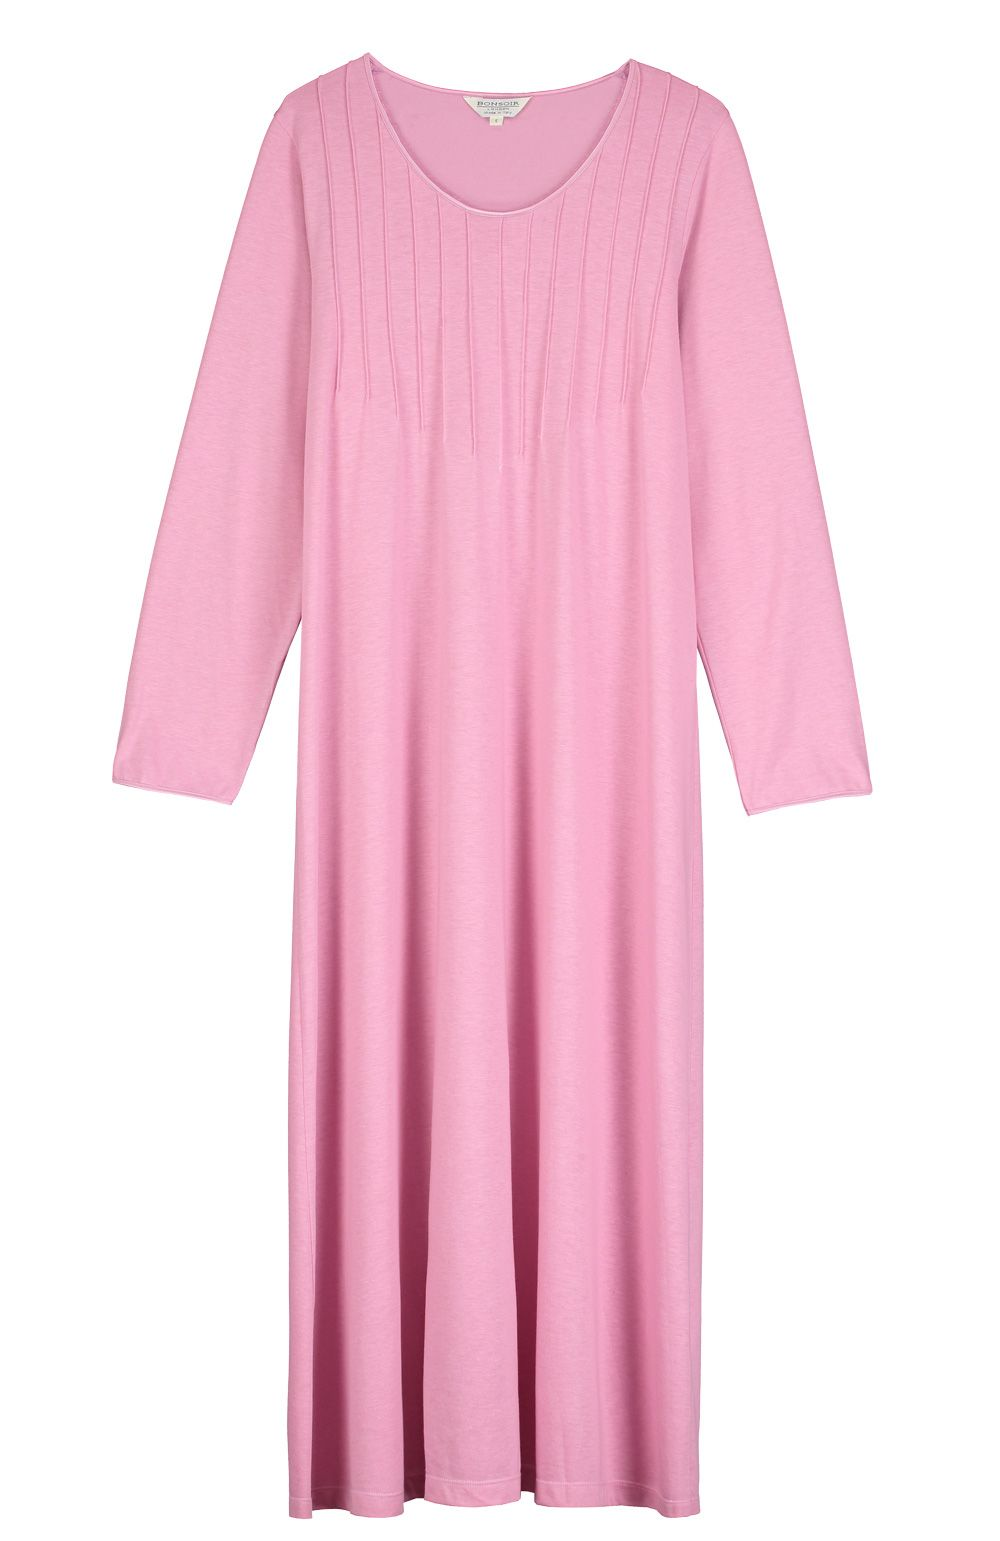 French Pleat Long Sleeve Nightdress (3241) - Vintage Pink  e612f369a